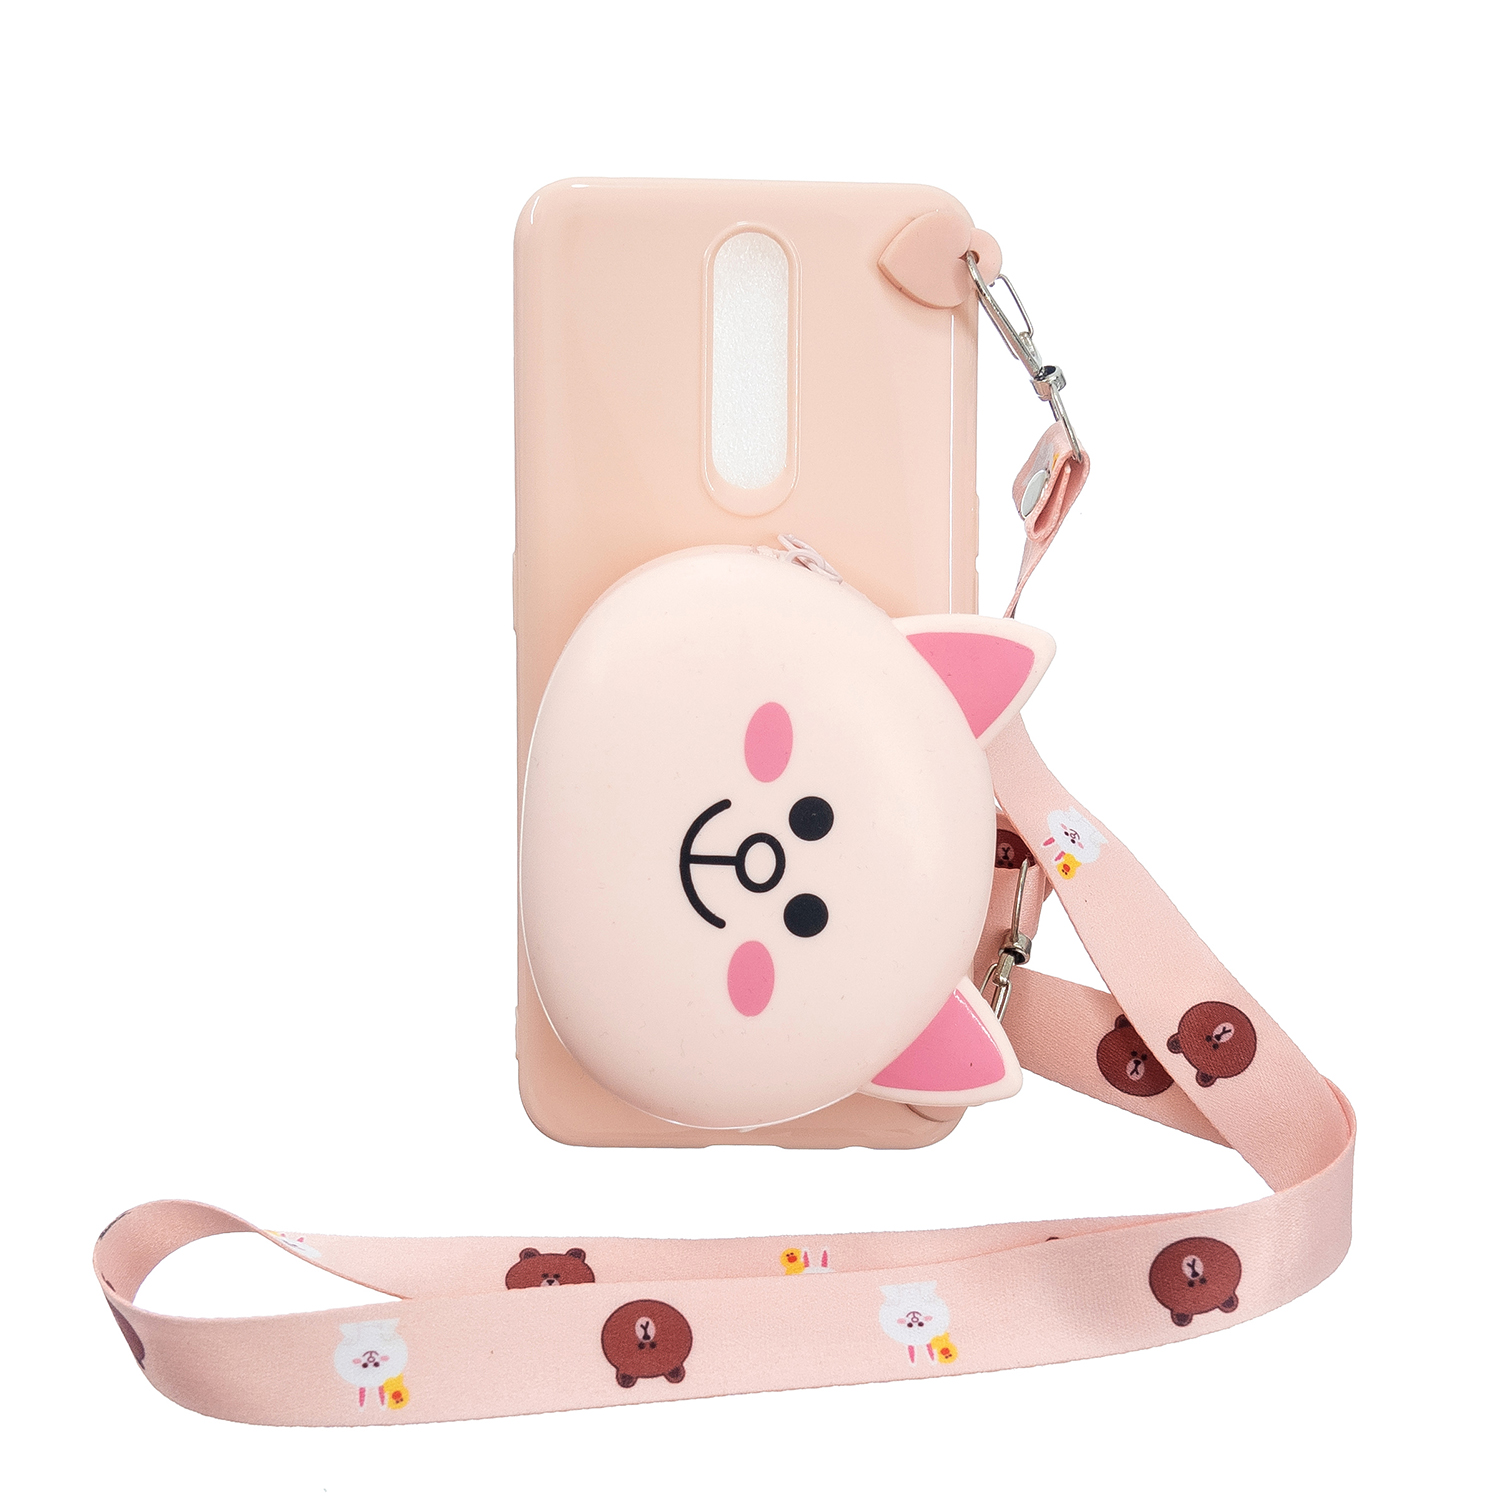 For OPPO F11/F11 Pro Cellphone Case Mobile Phone TPU Shell Shockproof Cover with Cartoon Cat Pig Panda Coin Purse Lovely Shoulder Starp  Pink